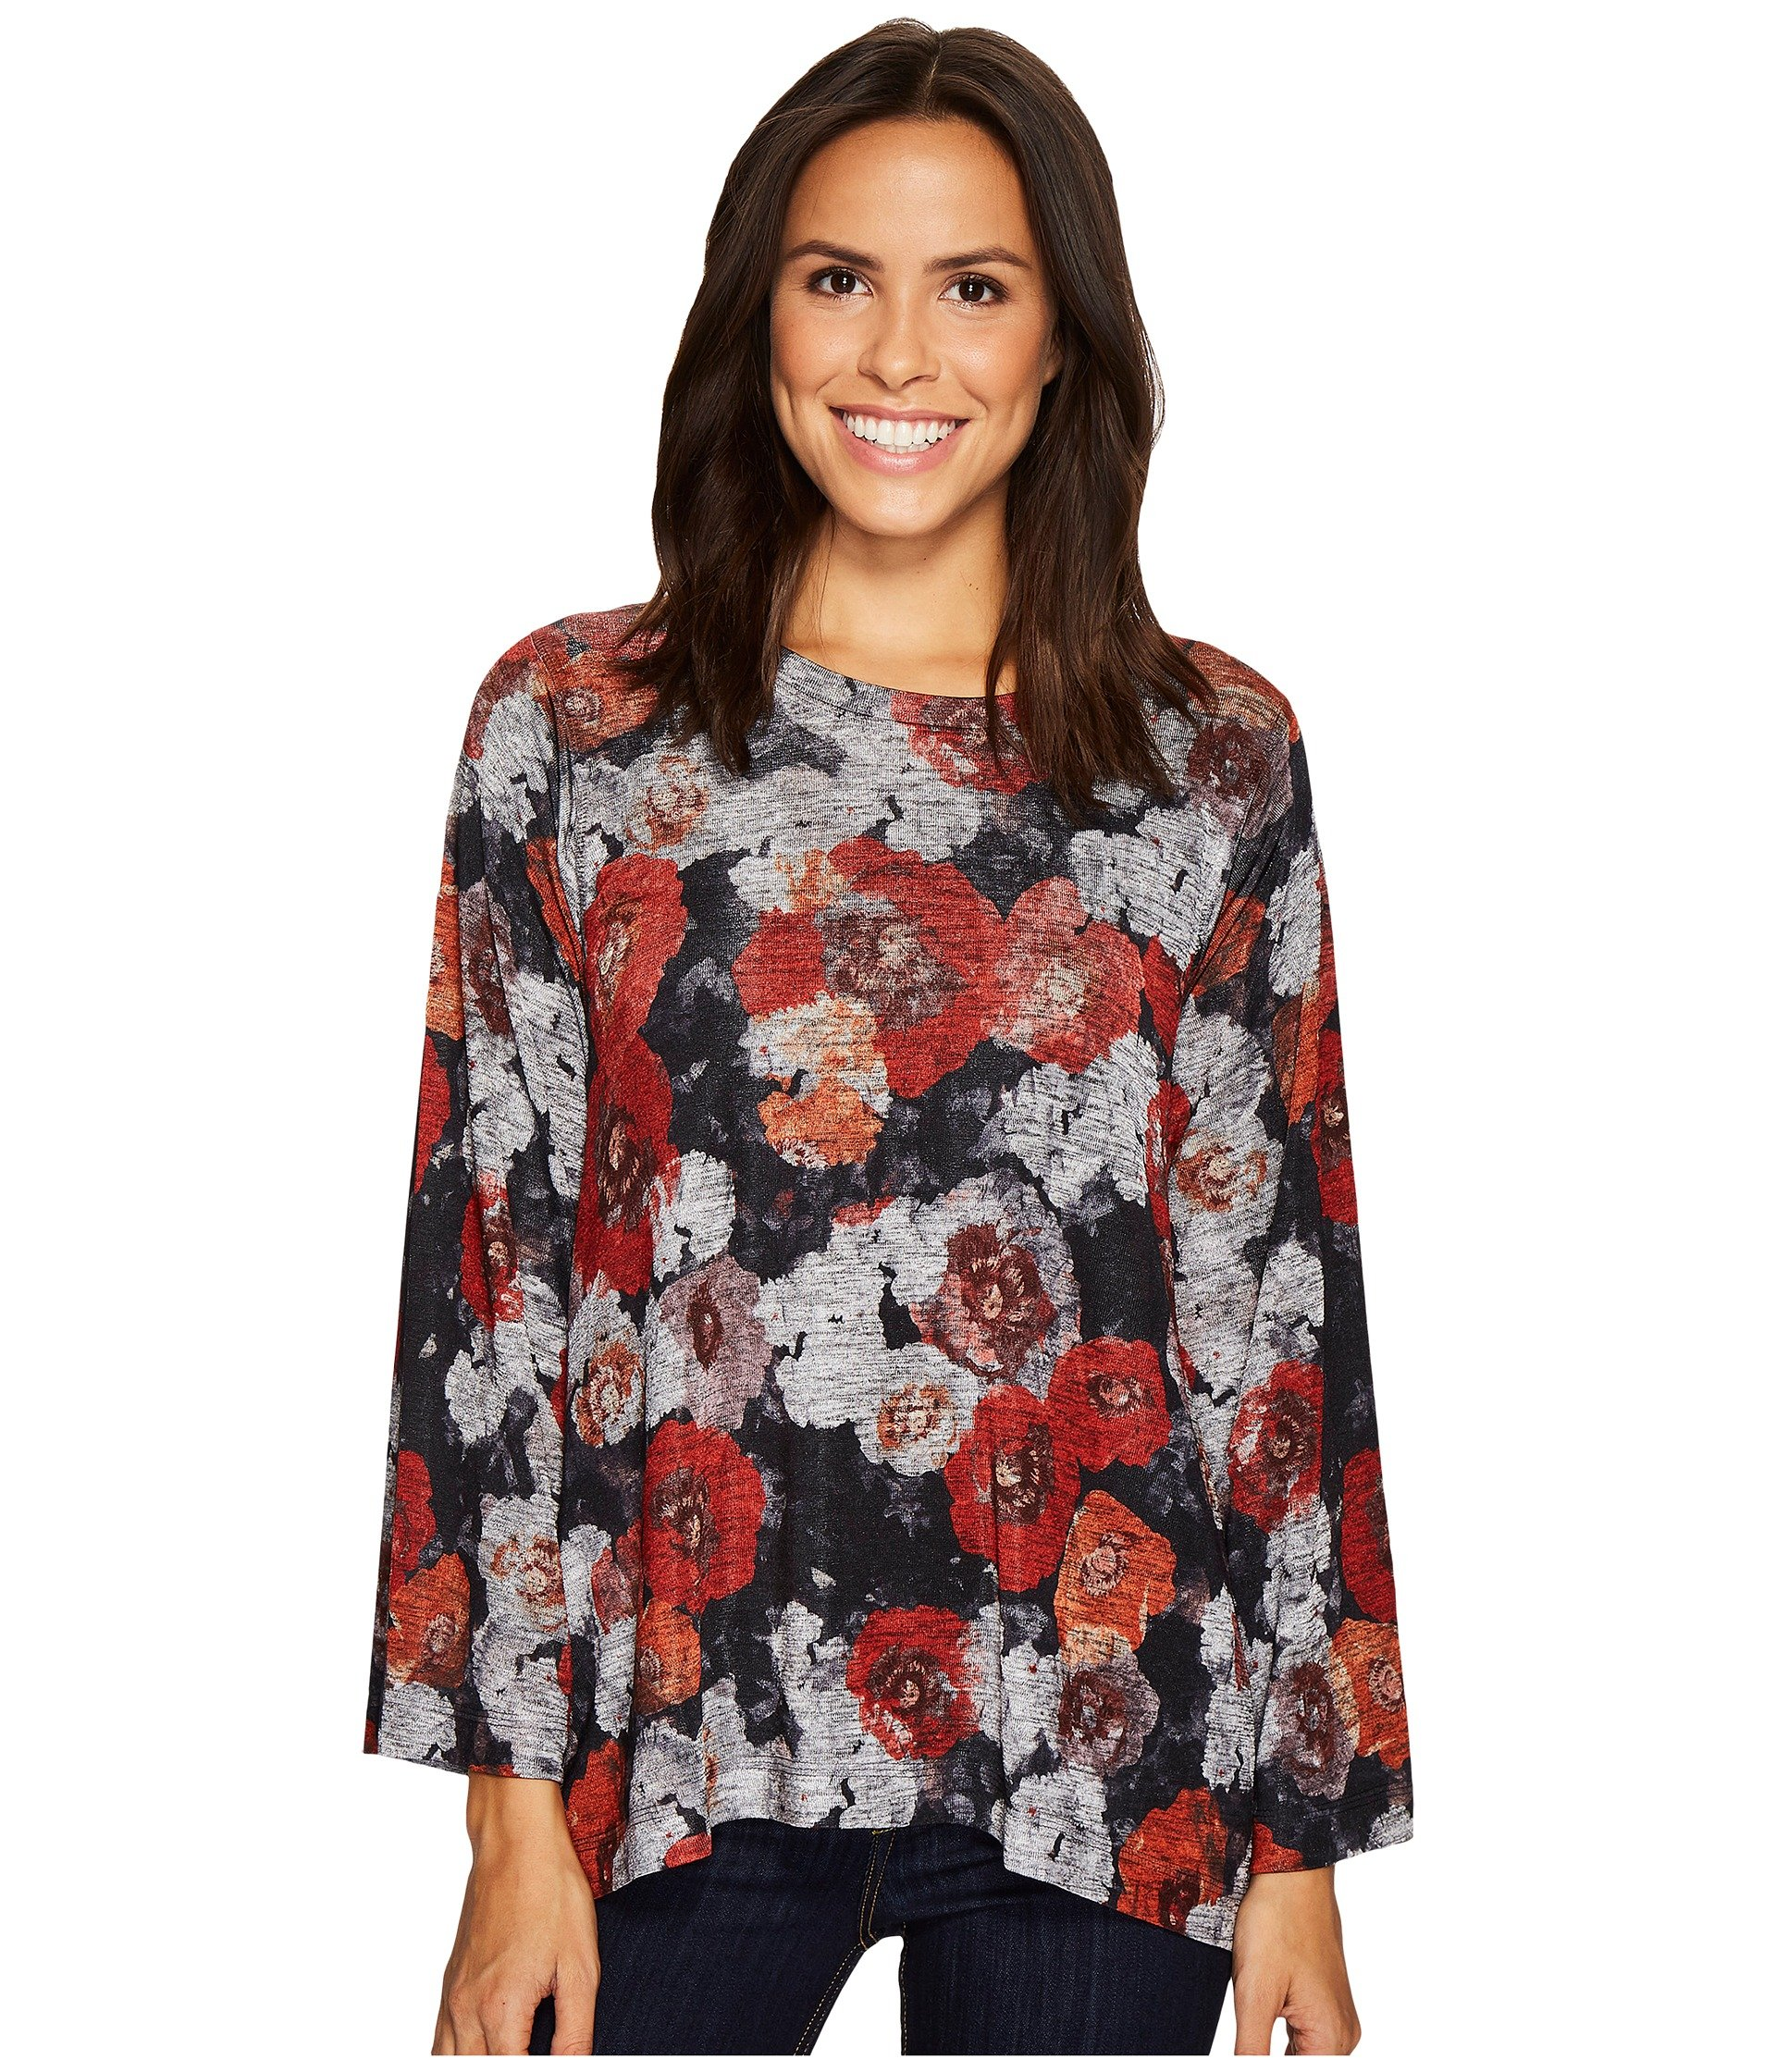 Poppy Floral Print Top